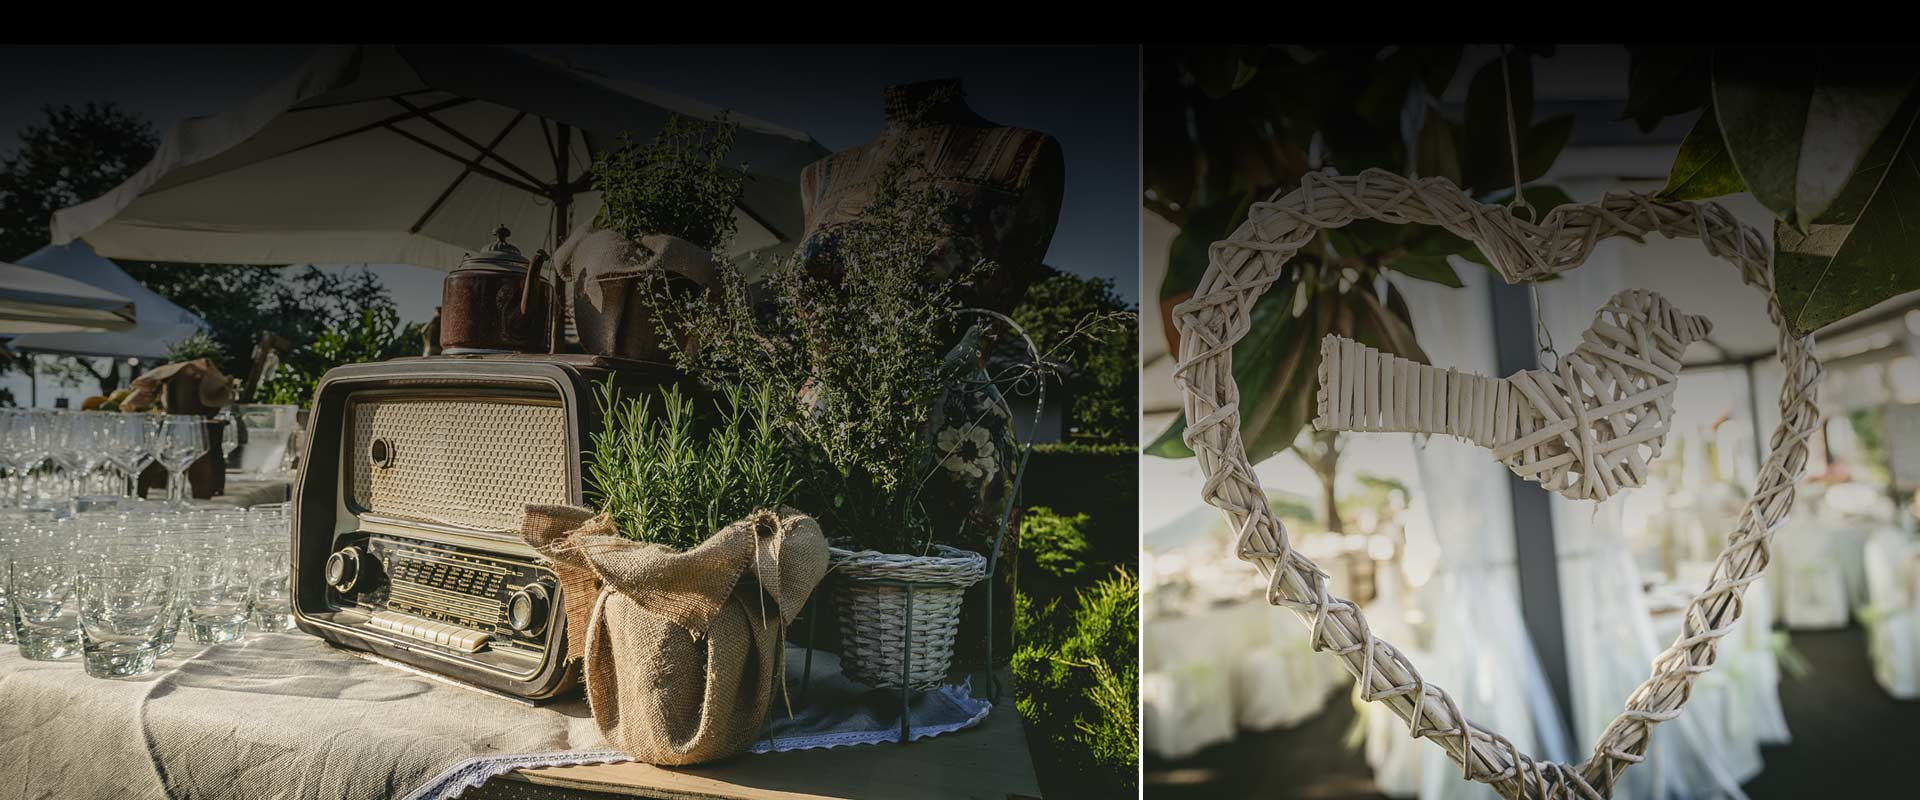 Matrimonio Country Chic Roma : Matrimonio country chic i giardini di ararat